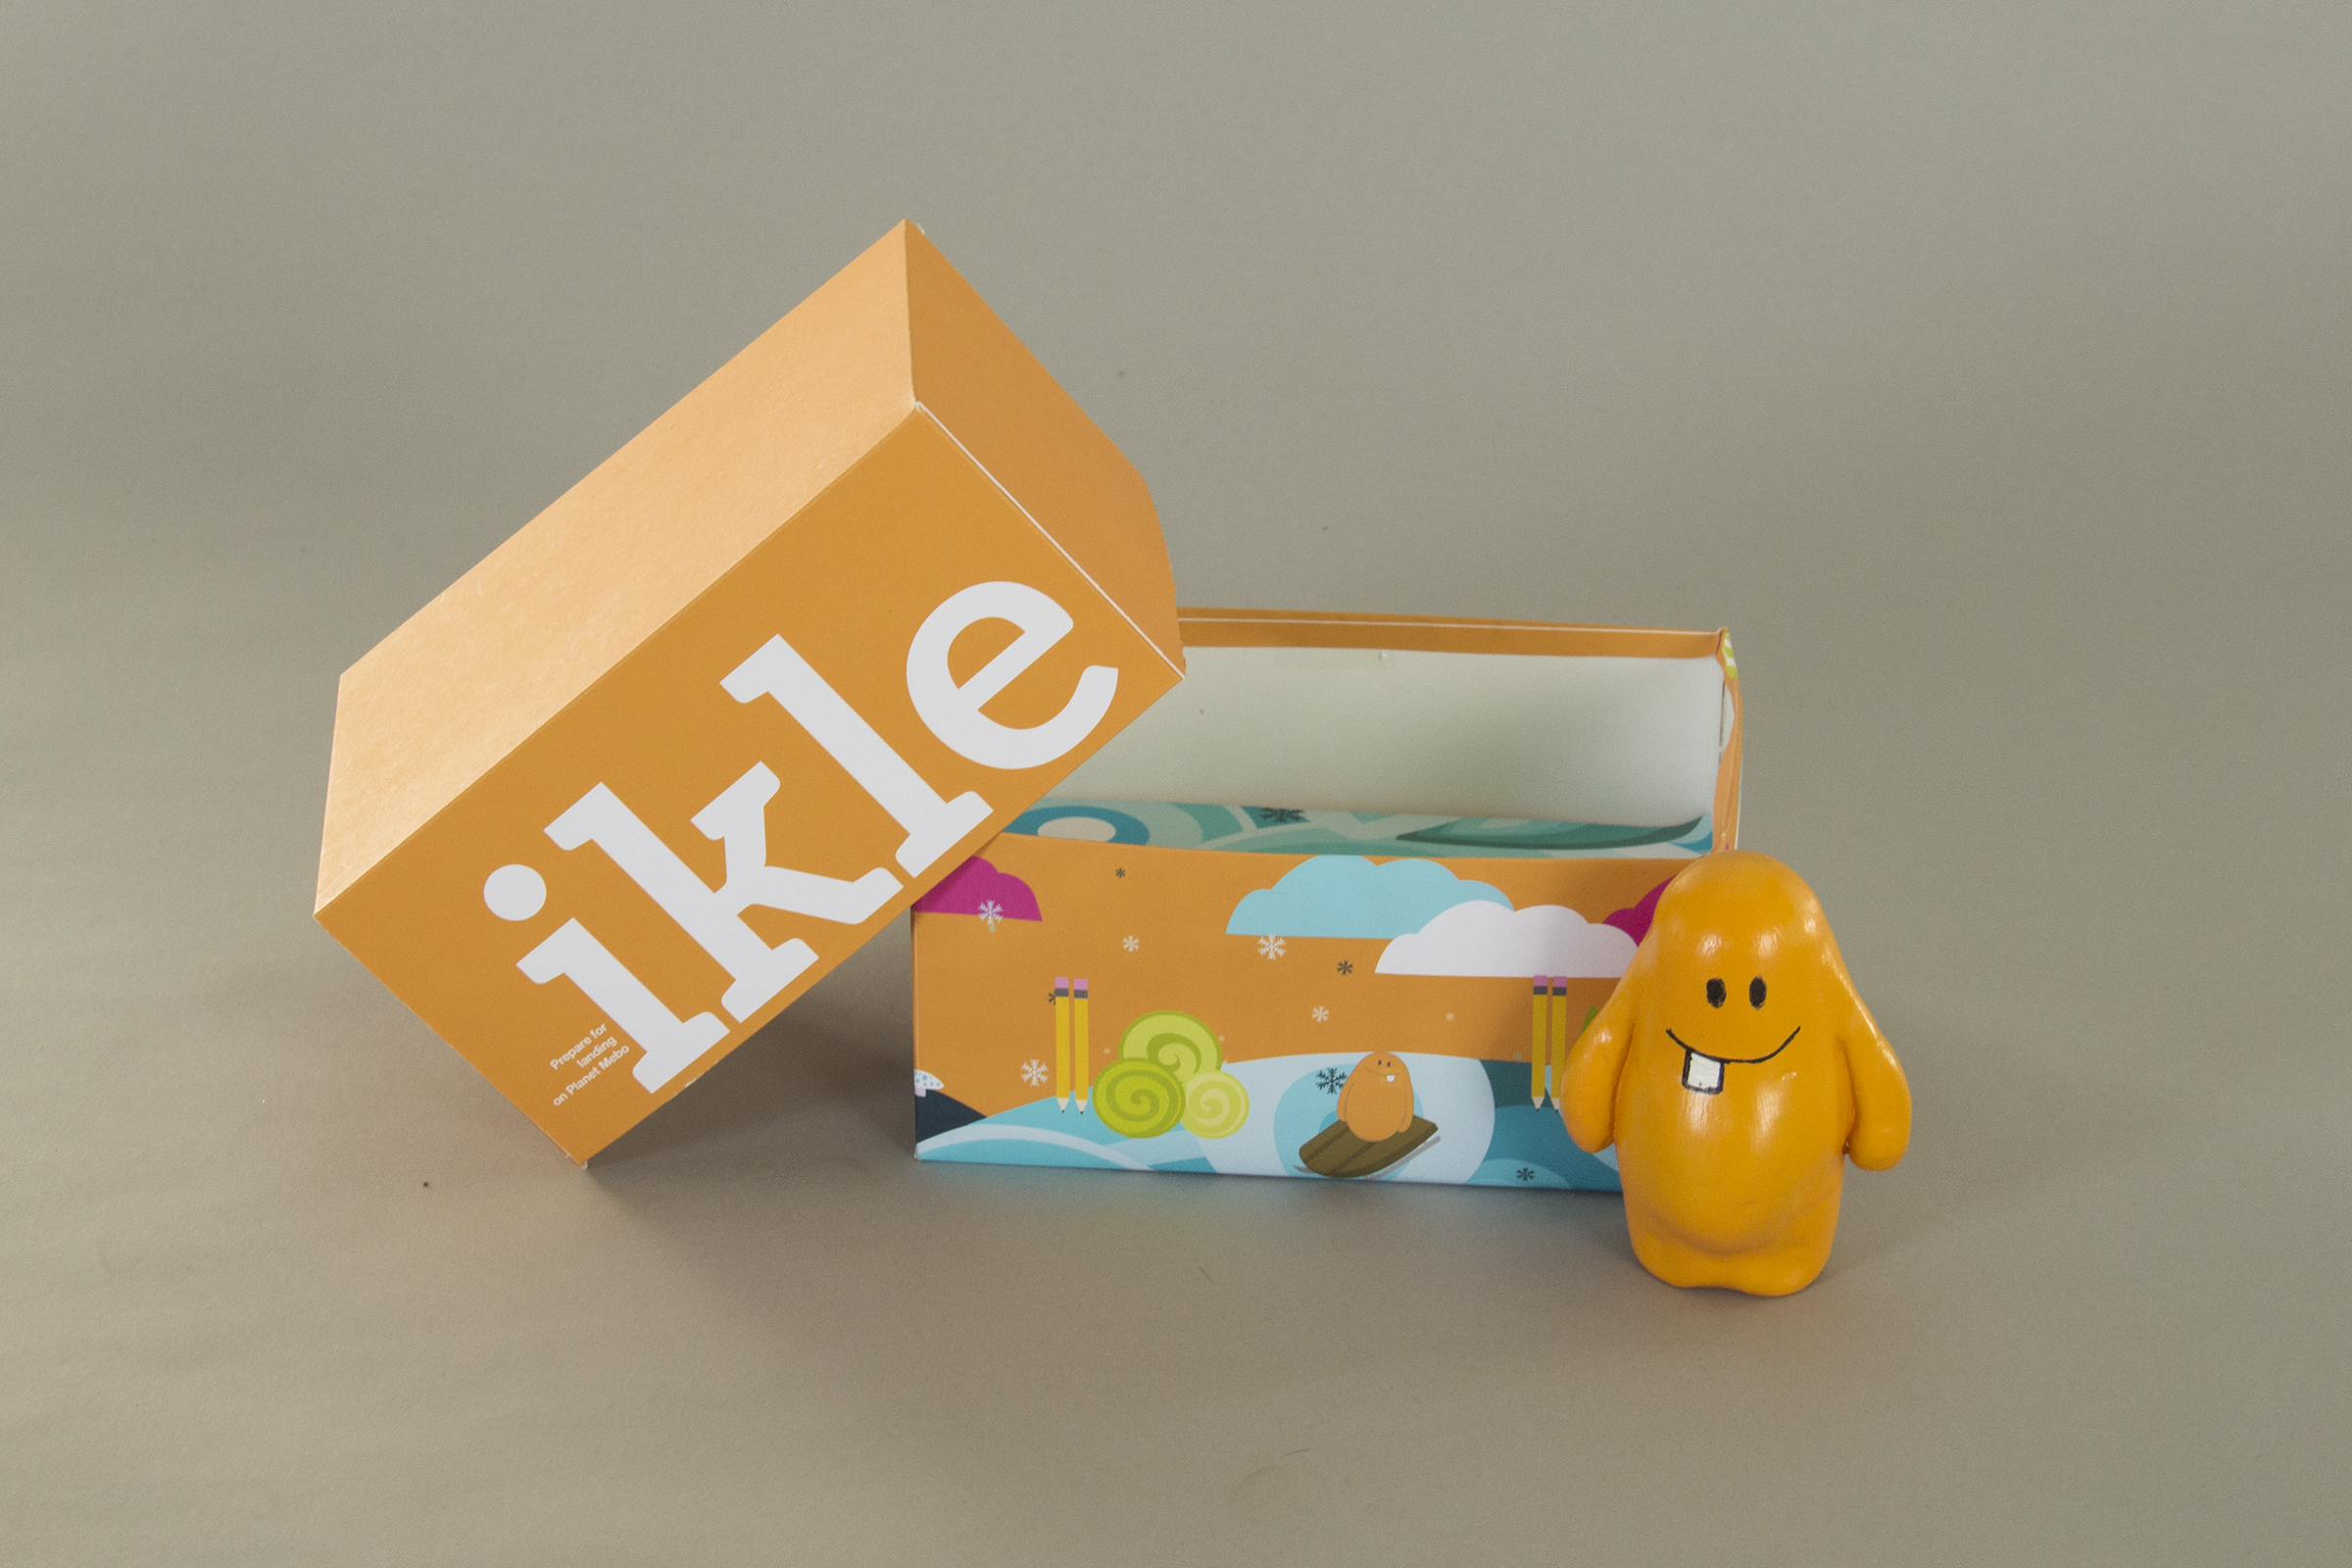 ikle packaging.jpg